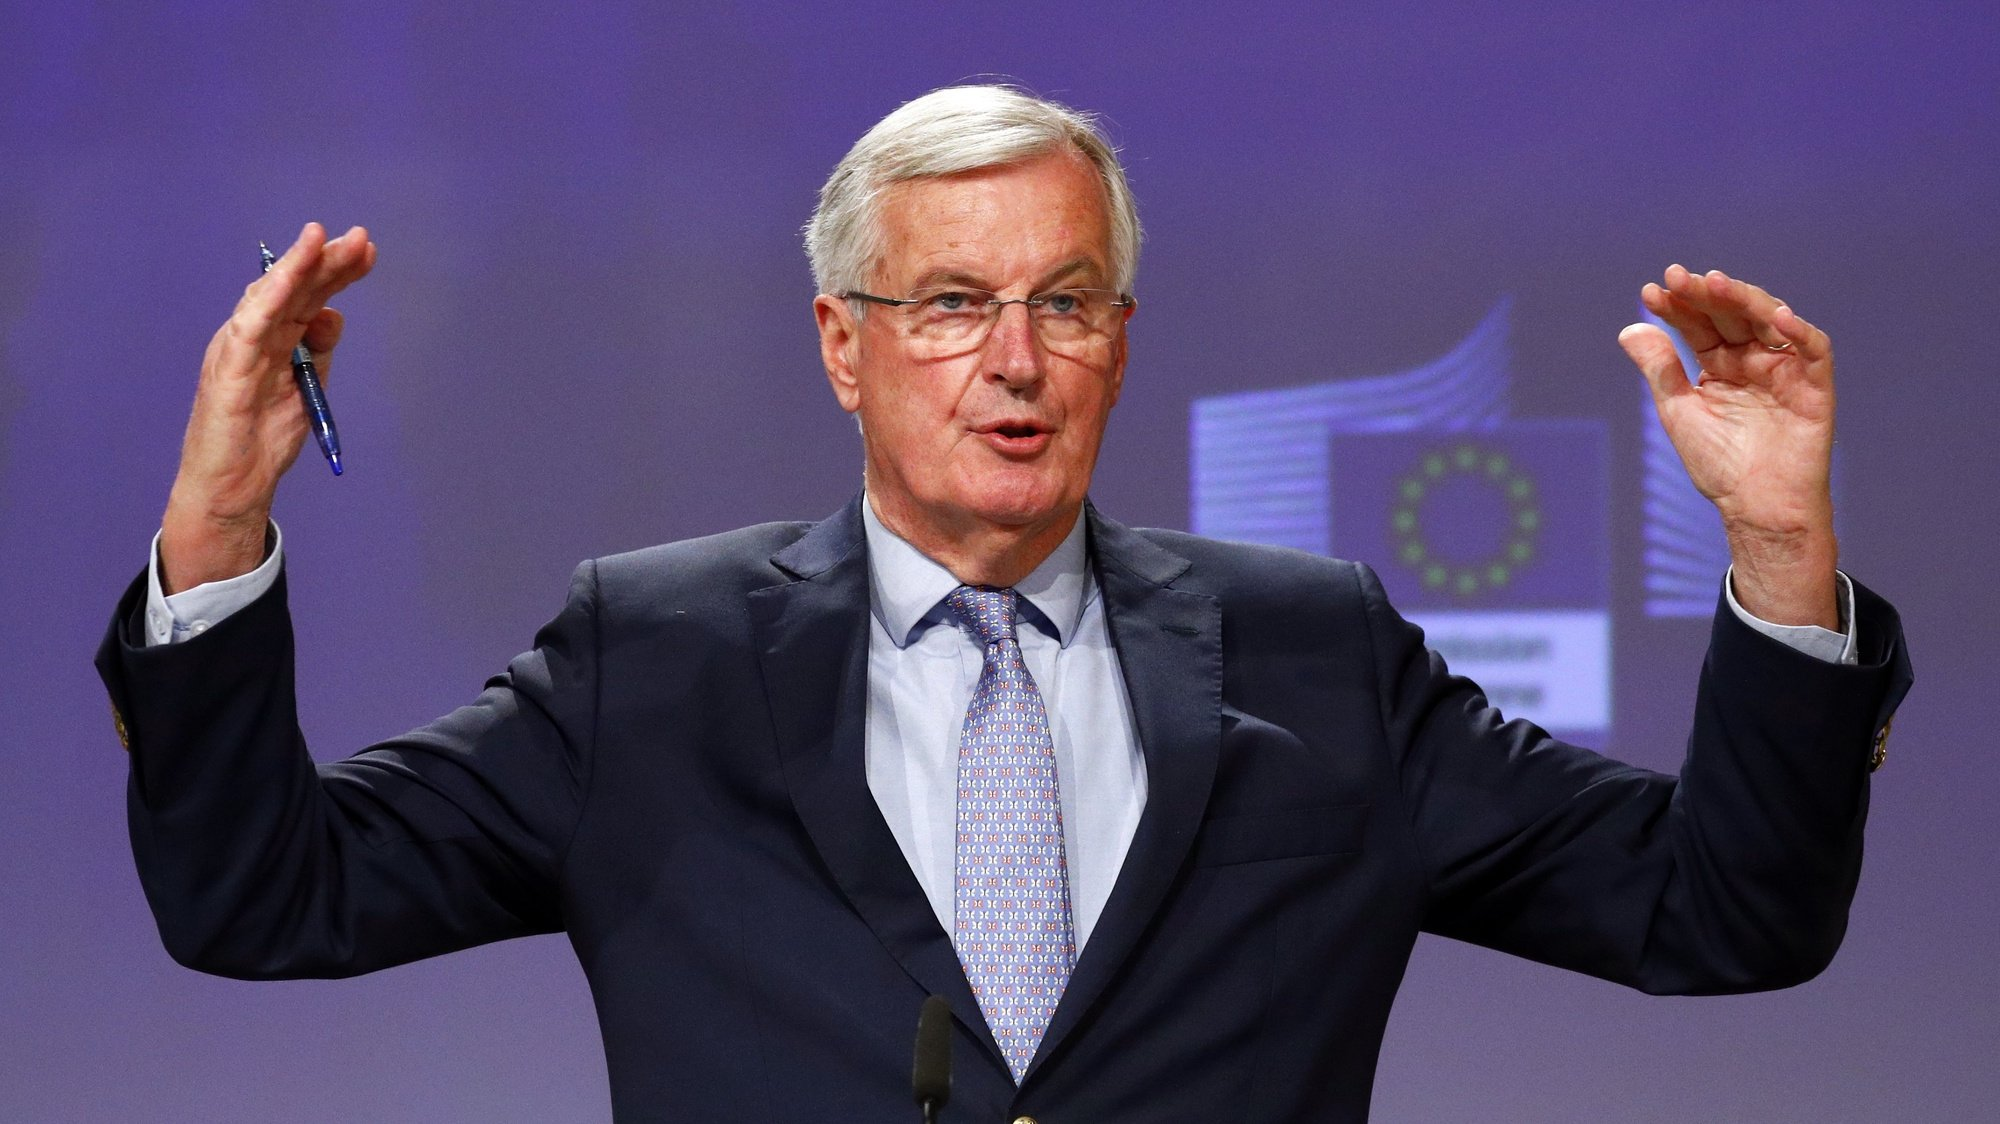 epa08423933 European Commission's Head of Task Force for Relations with the United Kingdom, Michel Barnier gestures during a press conference following the third round of EU - UK Brexit negotiations in Brussels, Belgium, 15 May 2020.  EPA/FRANCOIS LENOIR / POOL